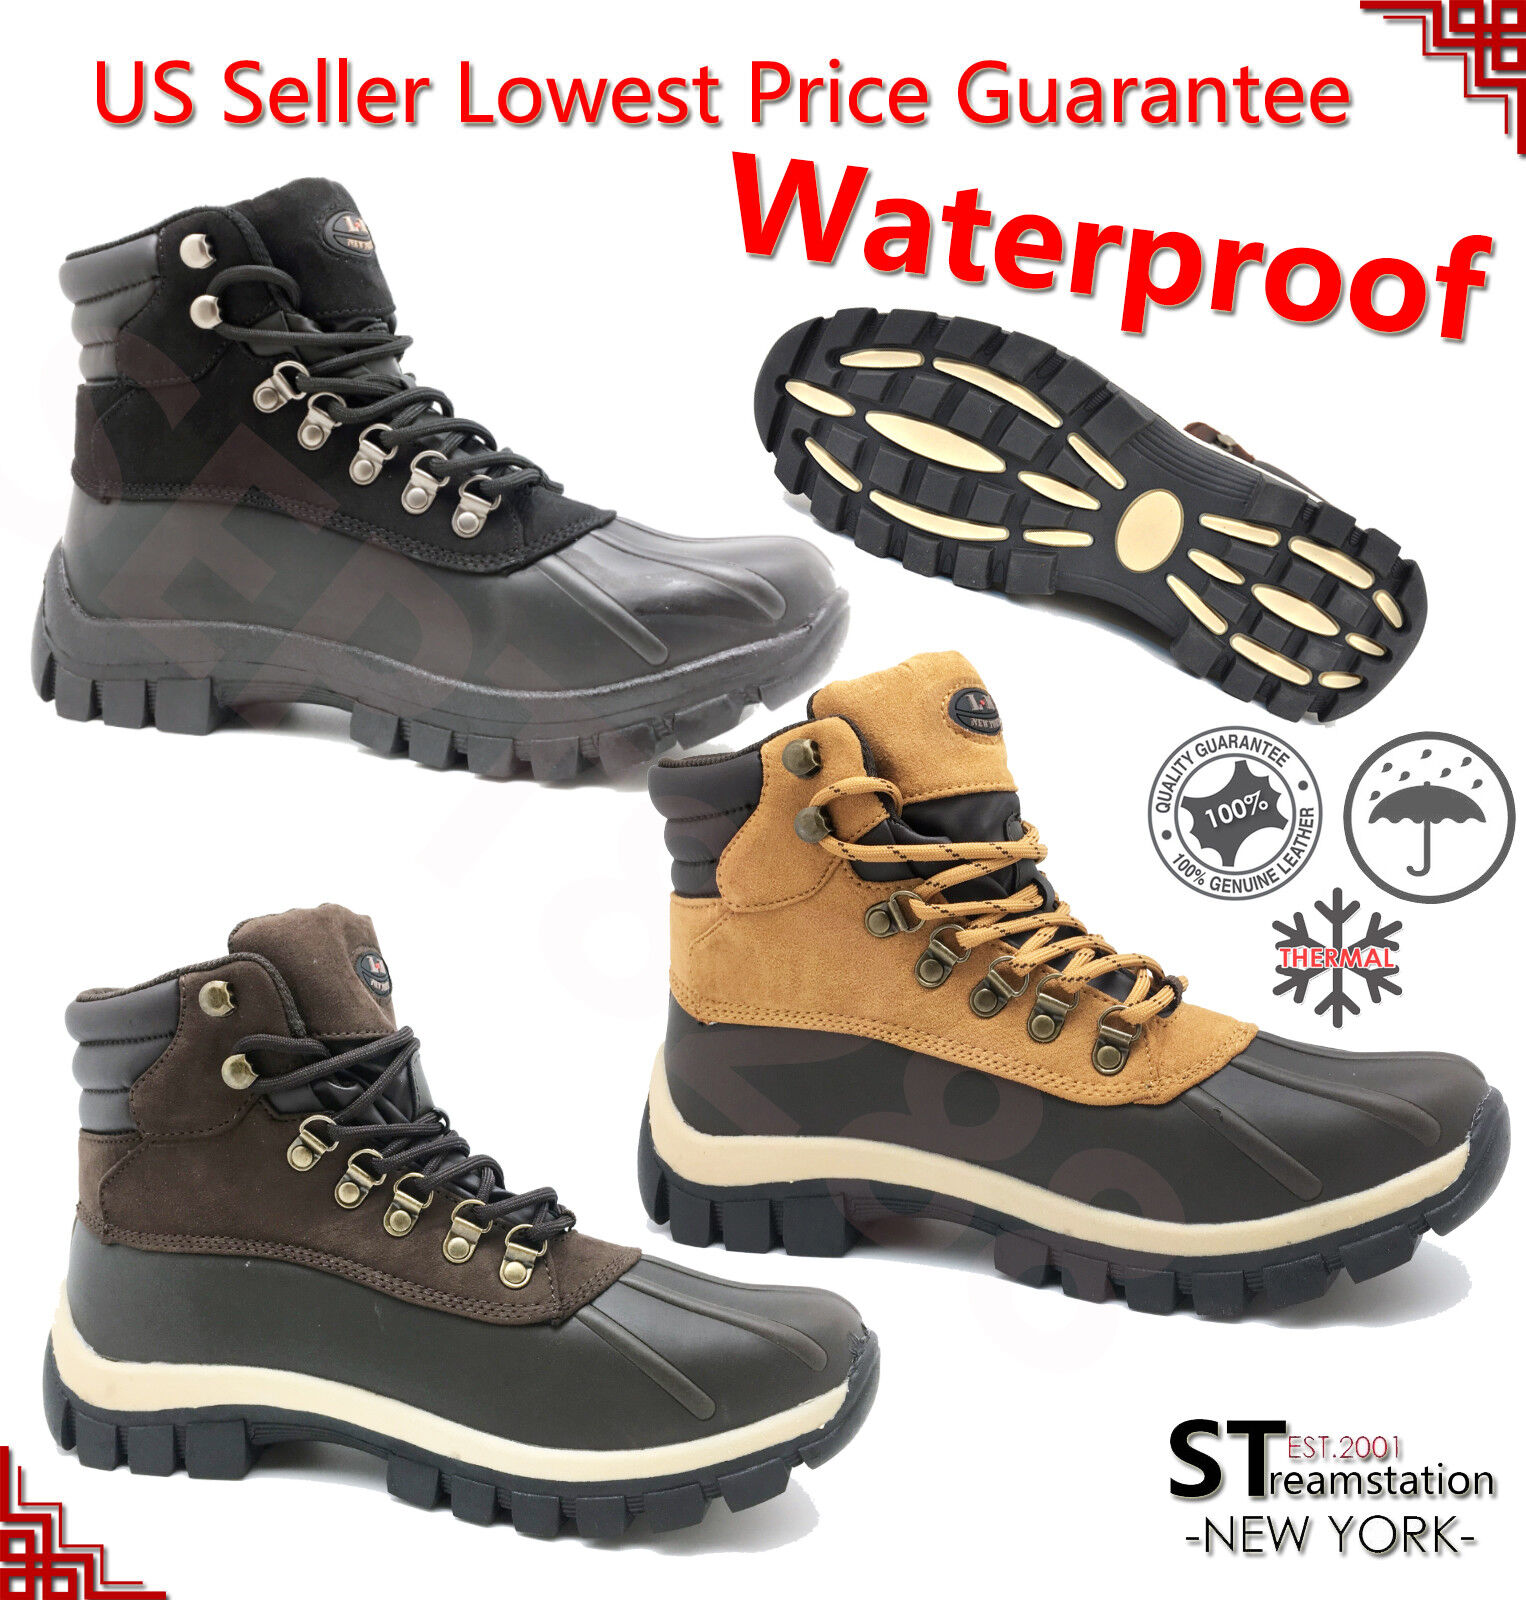 Boots - LM Men's Winter Snow Insulated Warm Boots Work Boots Leather Waterproof 2017